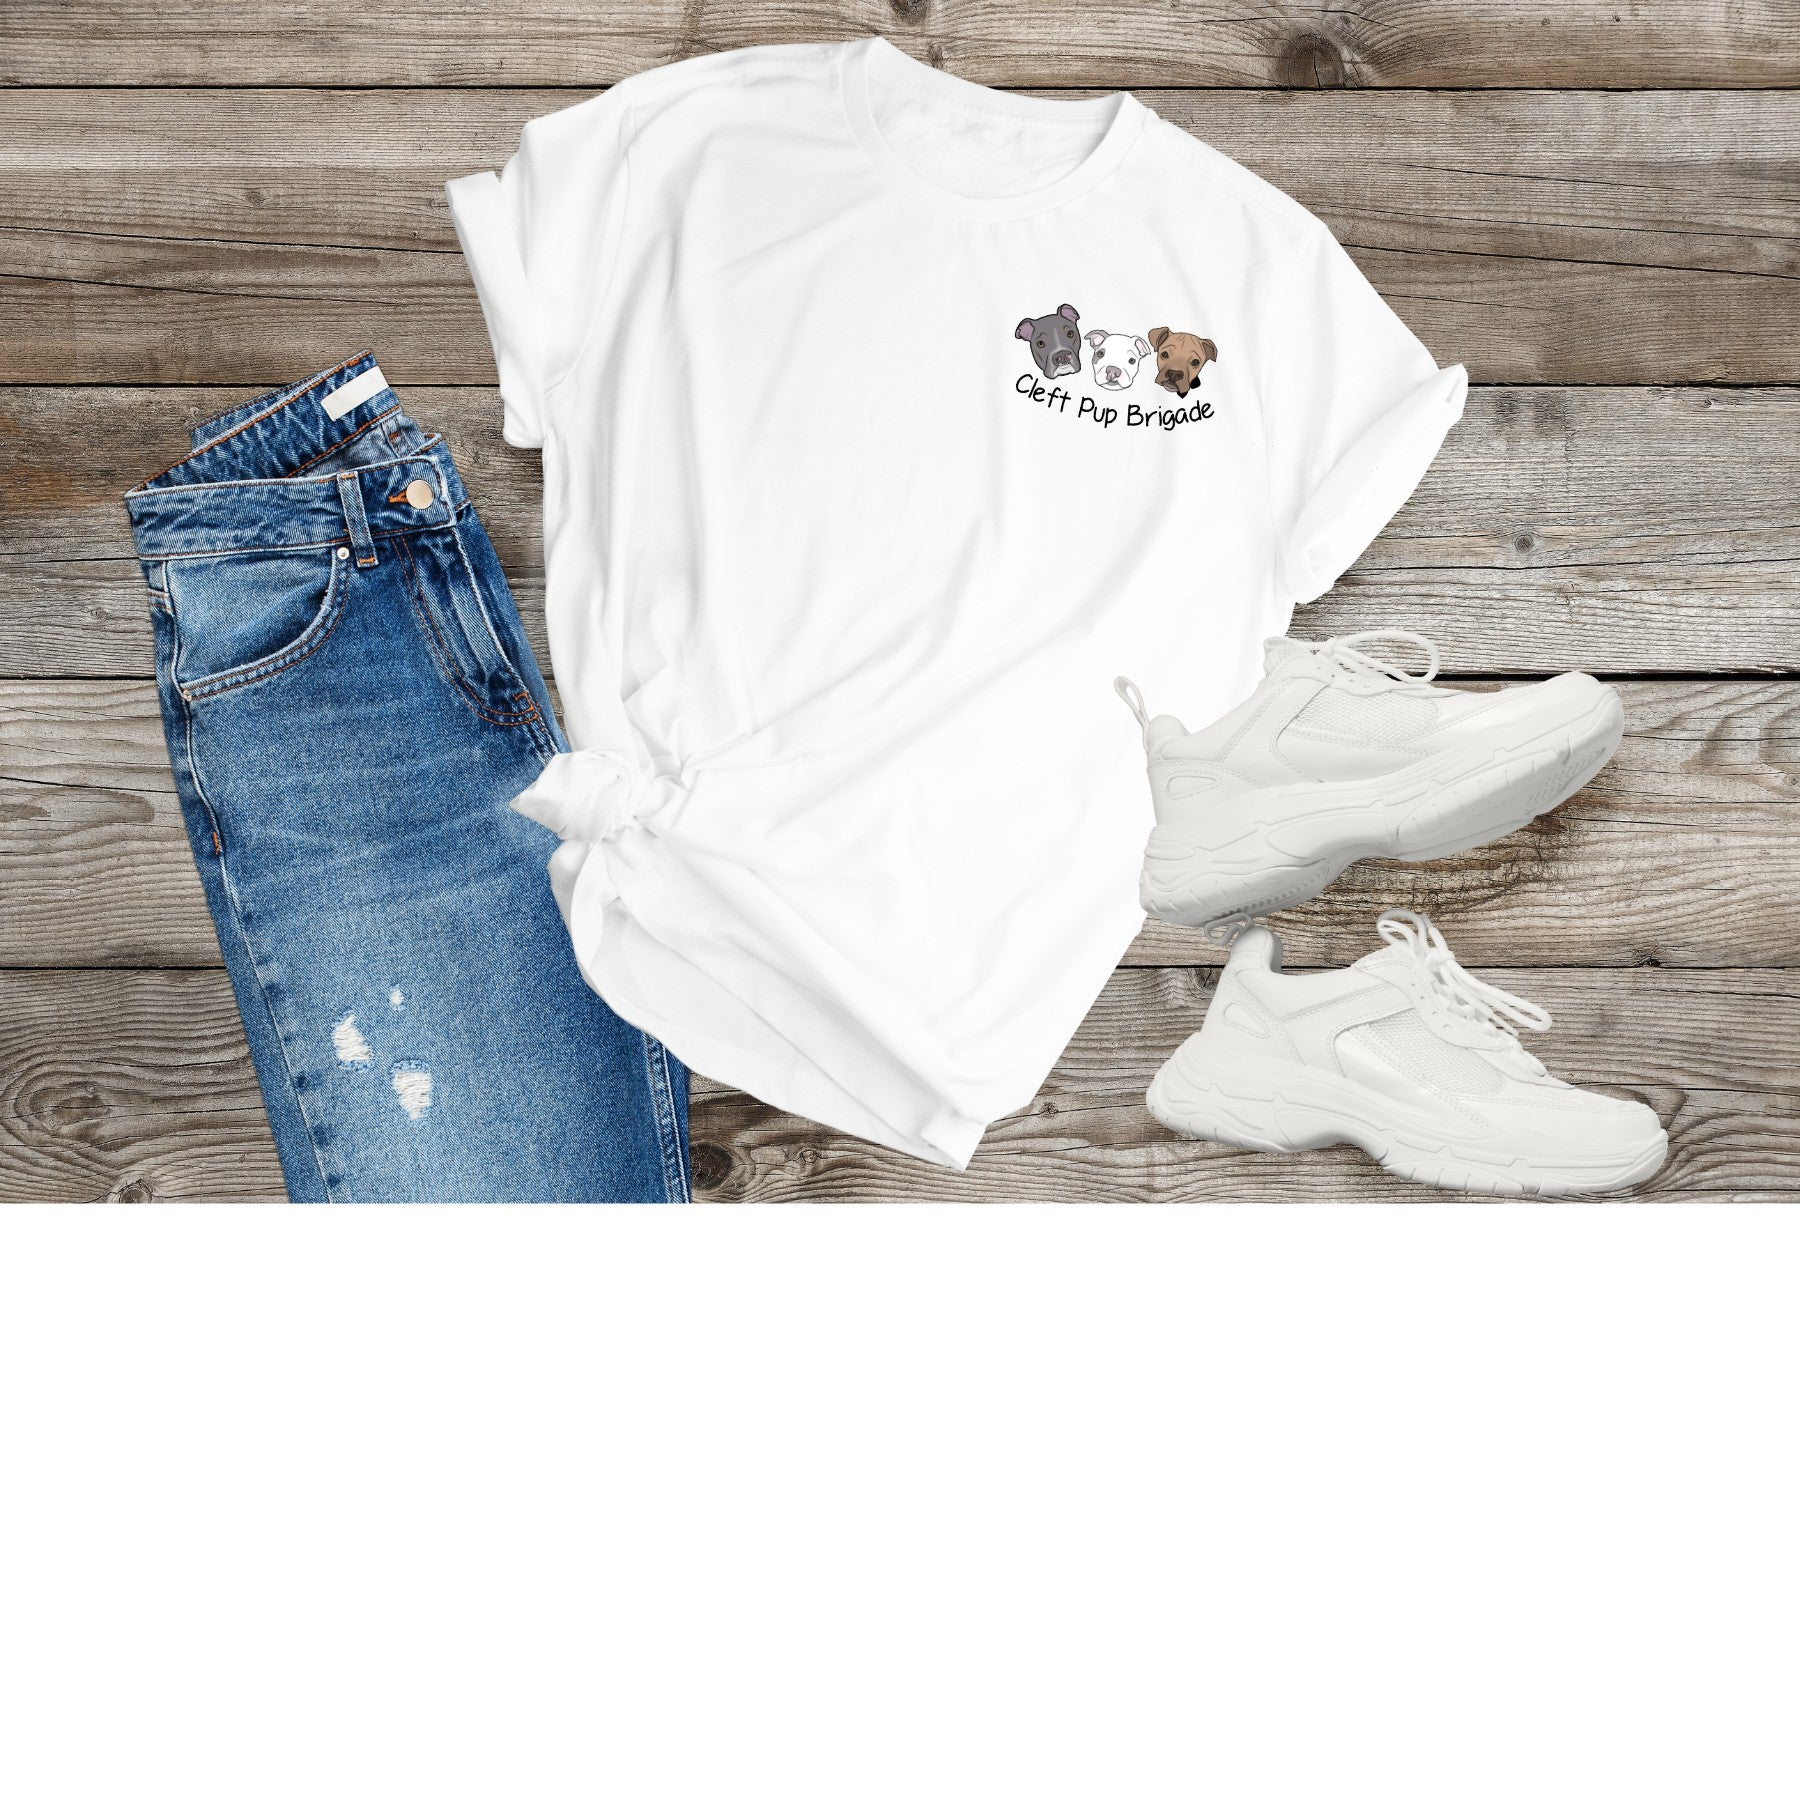 New Cleft Pup Brigade Unisex (small logo) - Ruff Life Rescue Wear